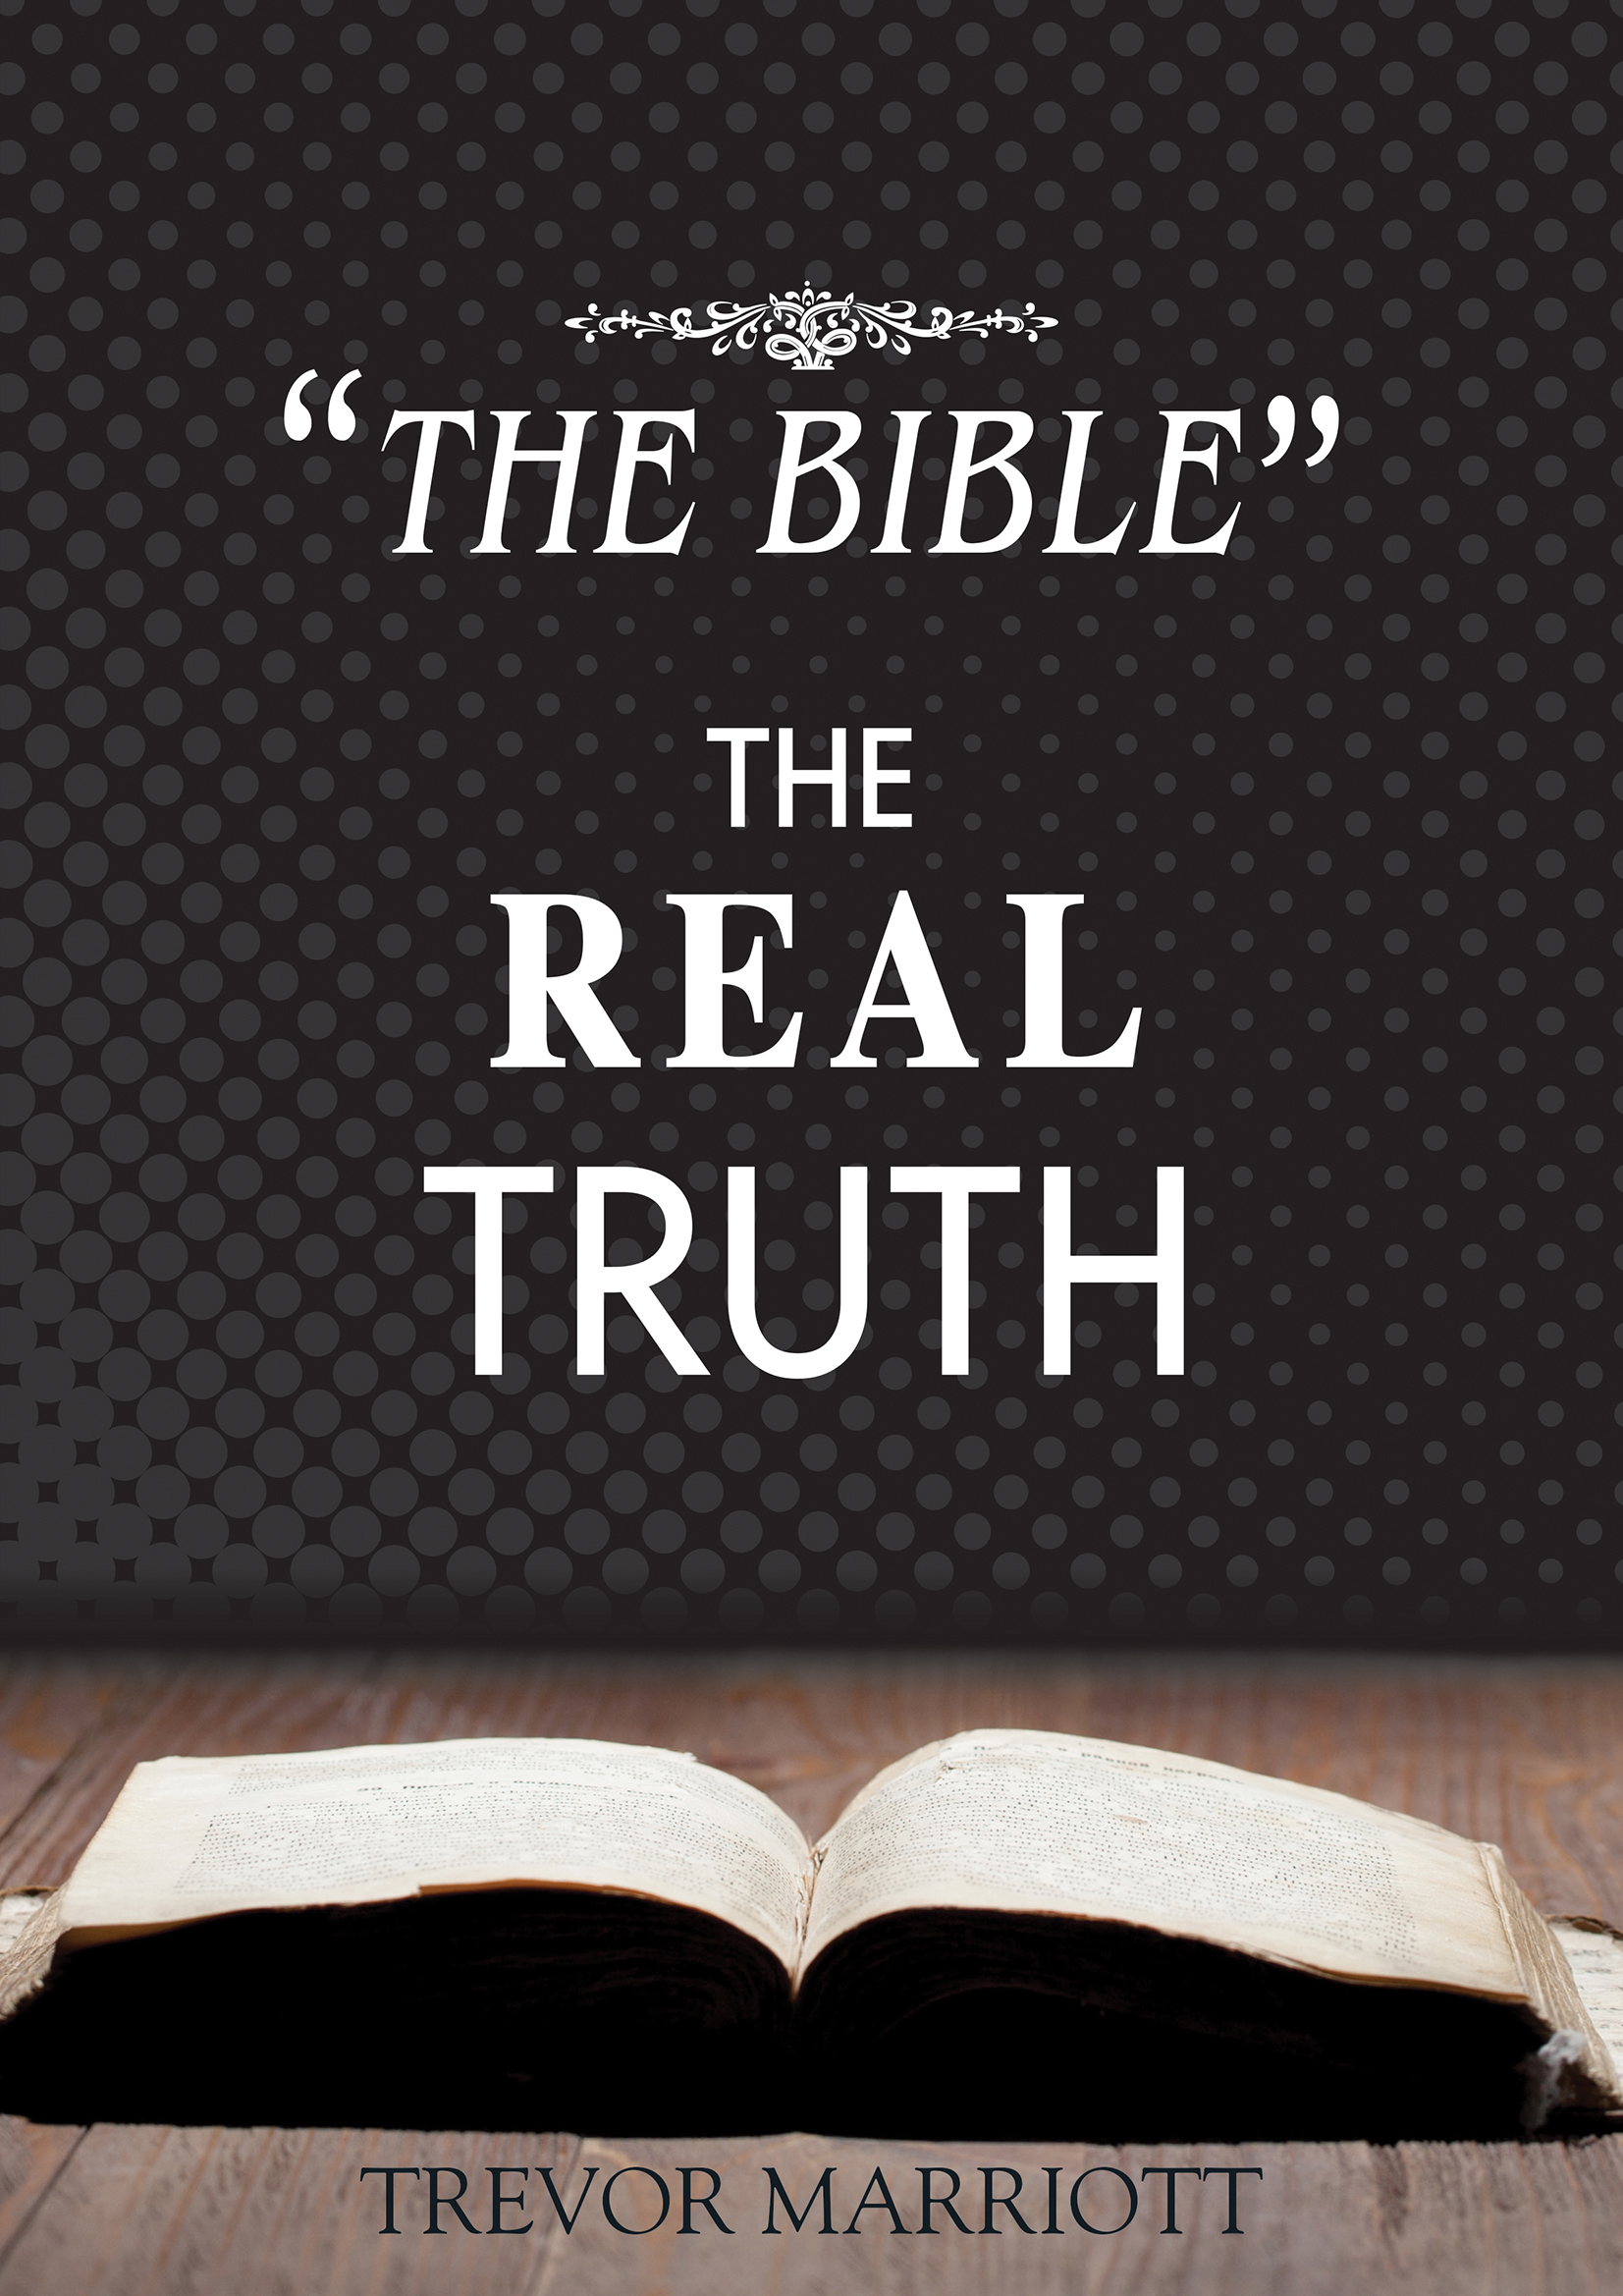 The Bible - The Real Truth